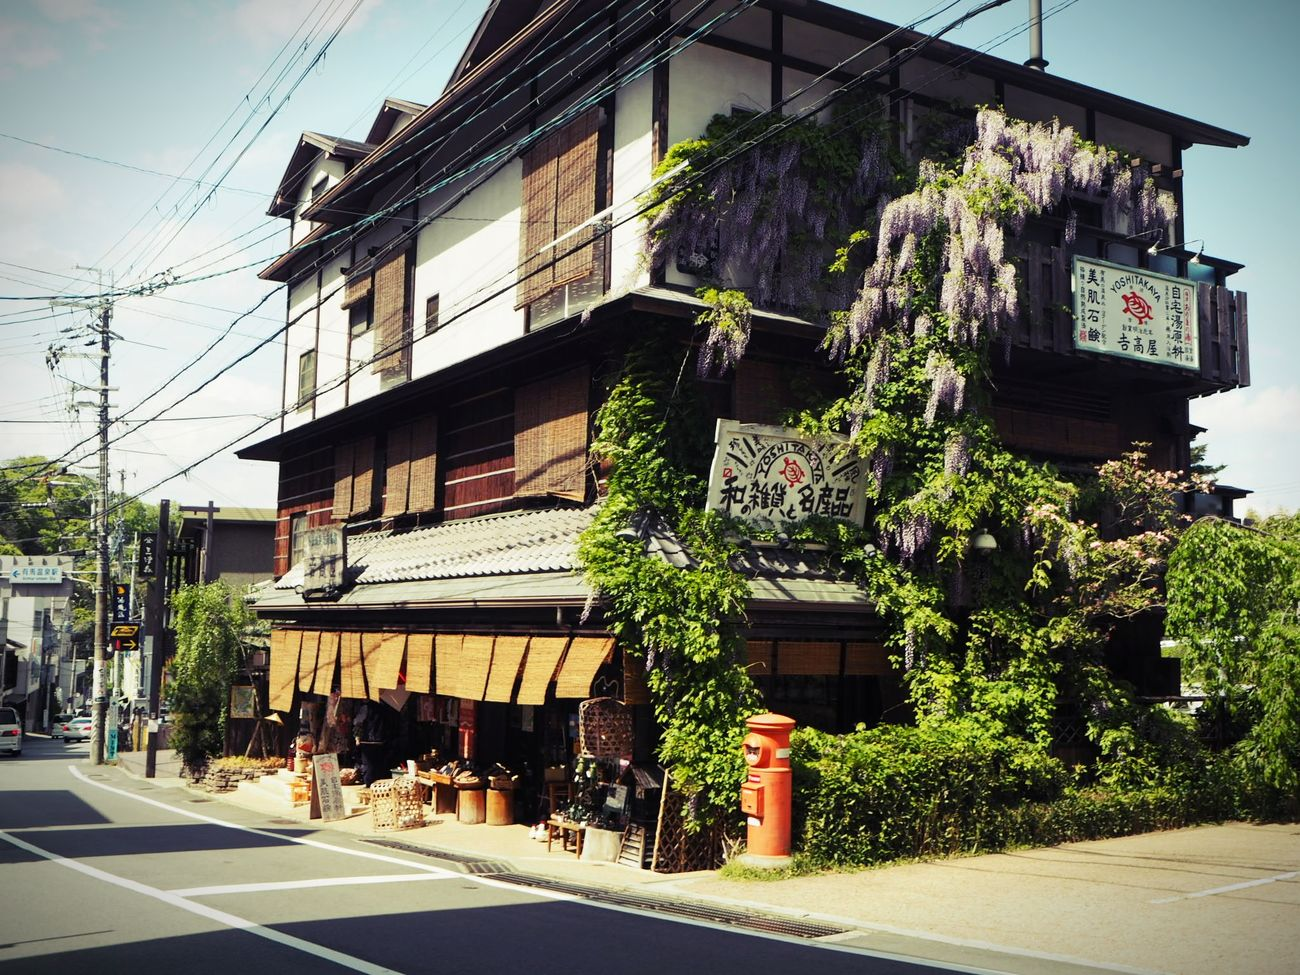 Historical Building Architecture Beautiful Japan Taking Photos Travel Onsen On The Road Streetphotography